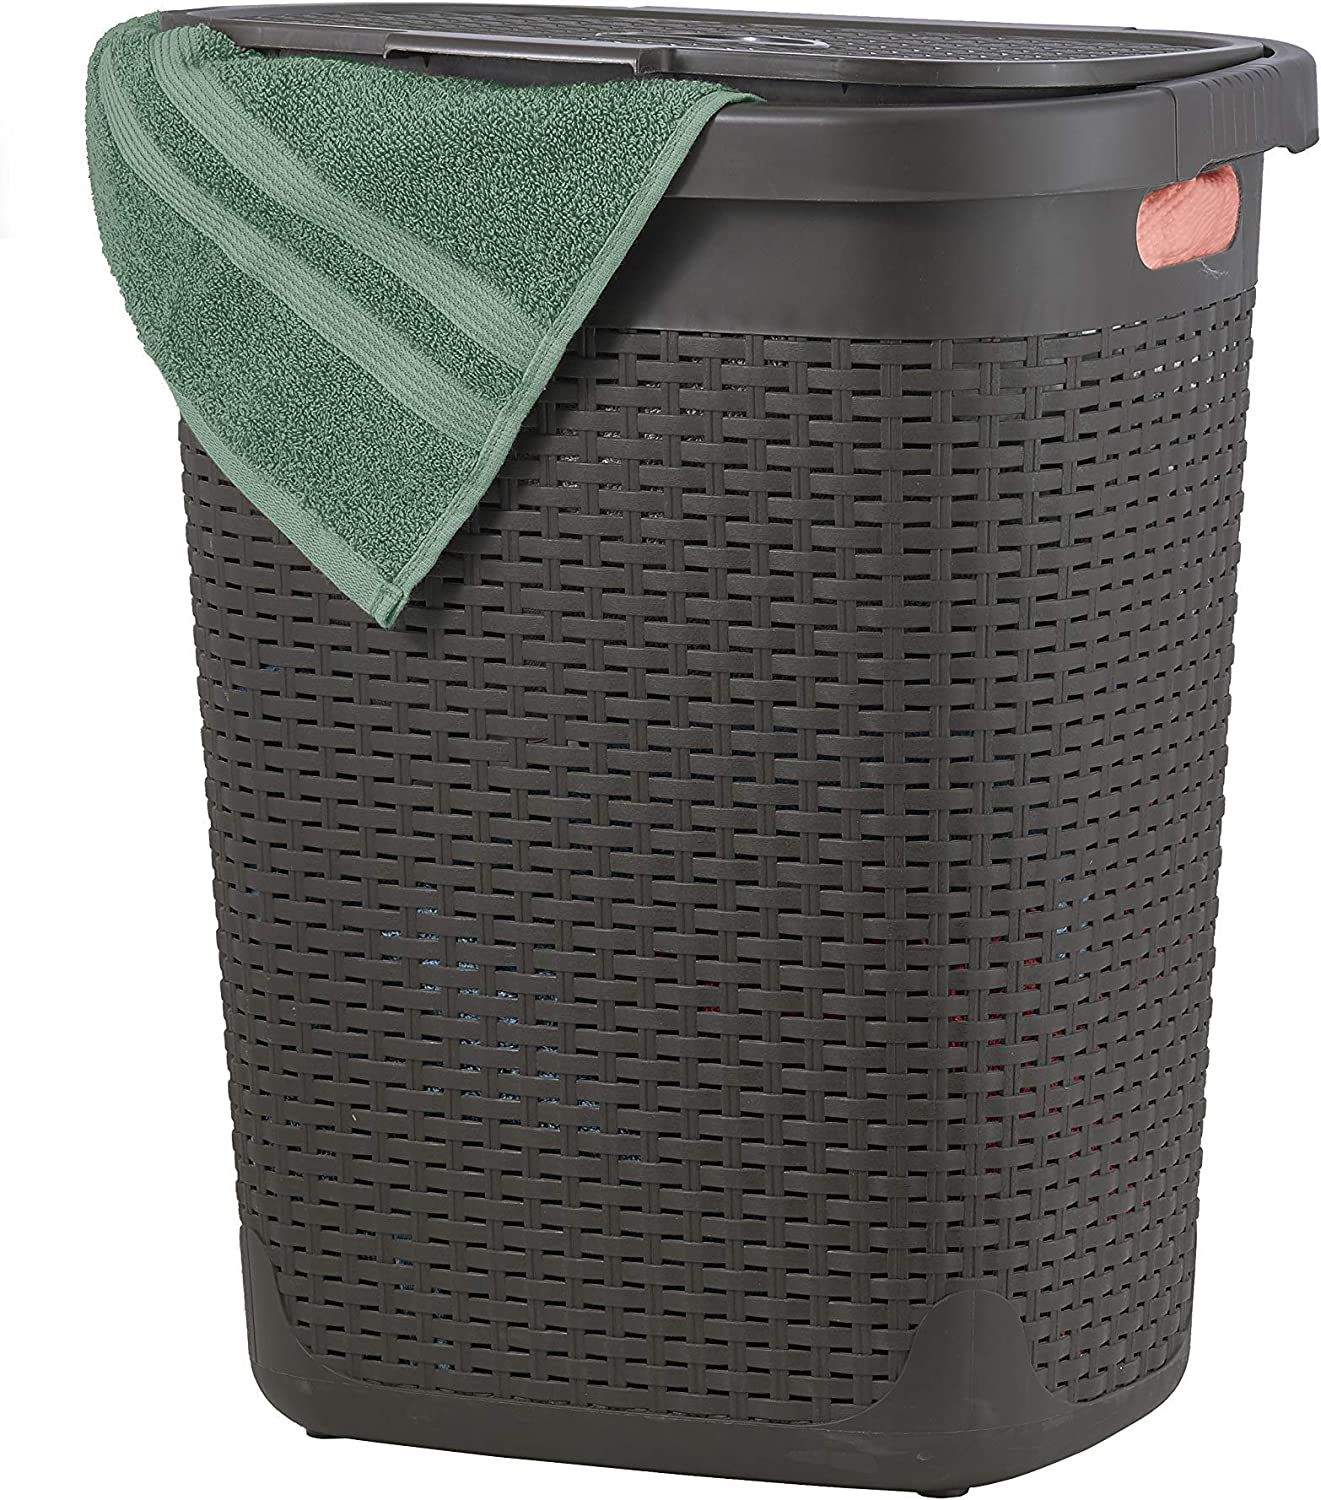 Wicker Laundry Hamper With Lid 50 Liter - Brown Laundry Basket 1.40 Bushel Durable Bin With Cutout Handles - Easy Storage Dirty Cloths in Washroom Bathroom, Or Bedroom. By Superio.